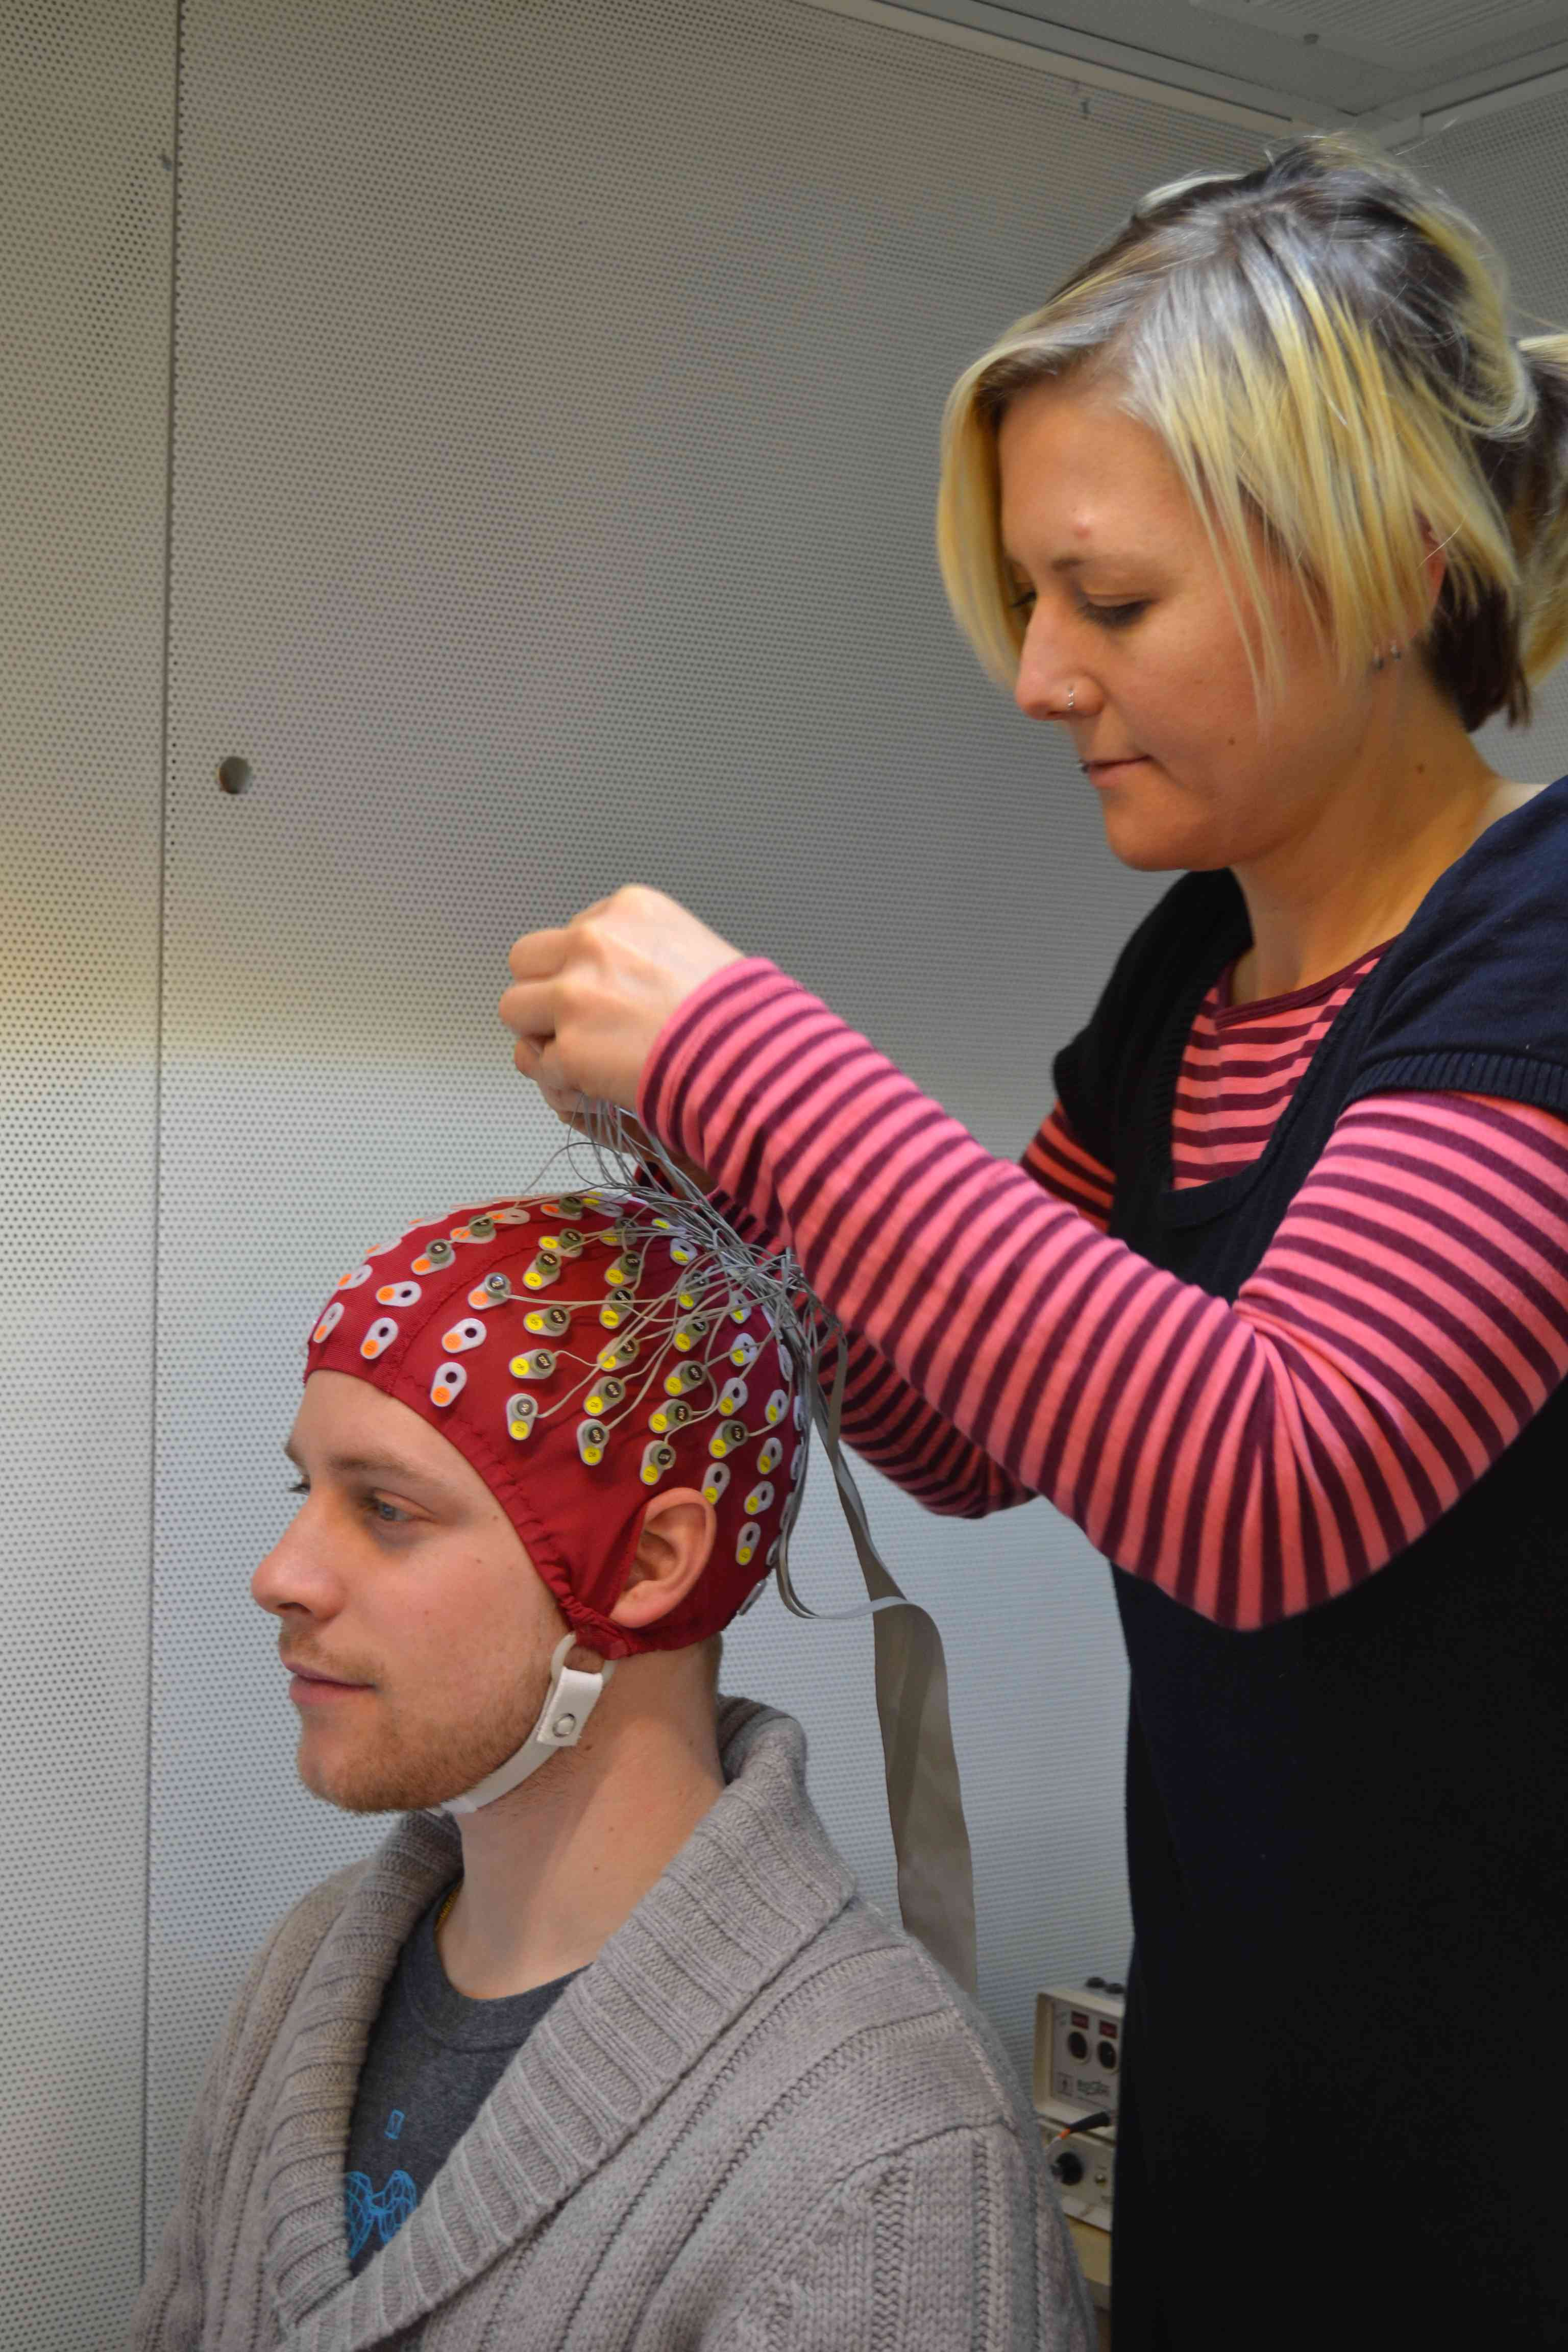 eeg 01 Summary report for: 29-209901 - neurodiagnostic technologists conduct electroneurodiagnostic (end) tests such as electroencephalograms, evoked potentials, polysomnograms, or electronystagmograms.